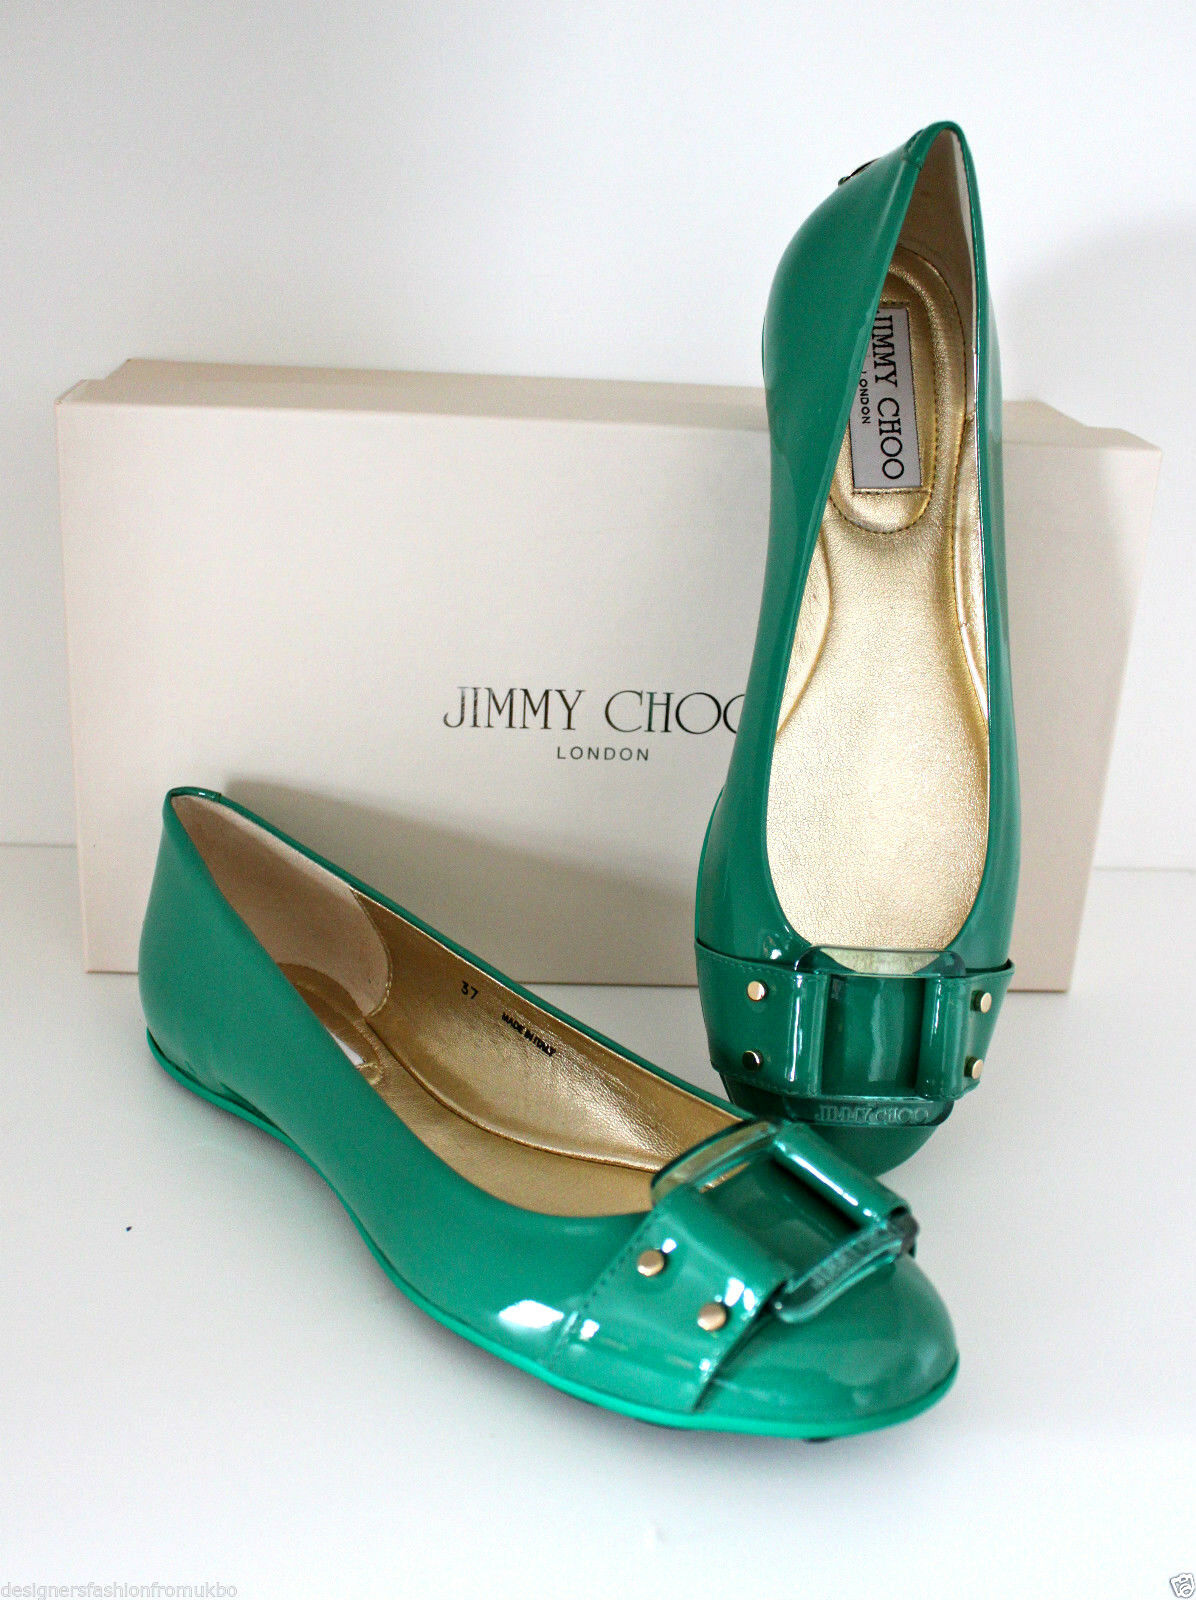 JIMMY CHOO MORSE PATENT LEATHER EMERALD JADE BALLERINA FLATS SZ 37